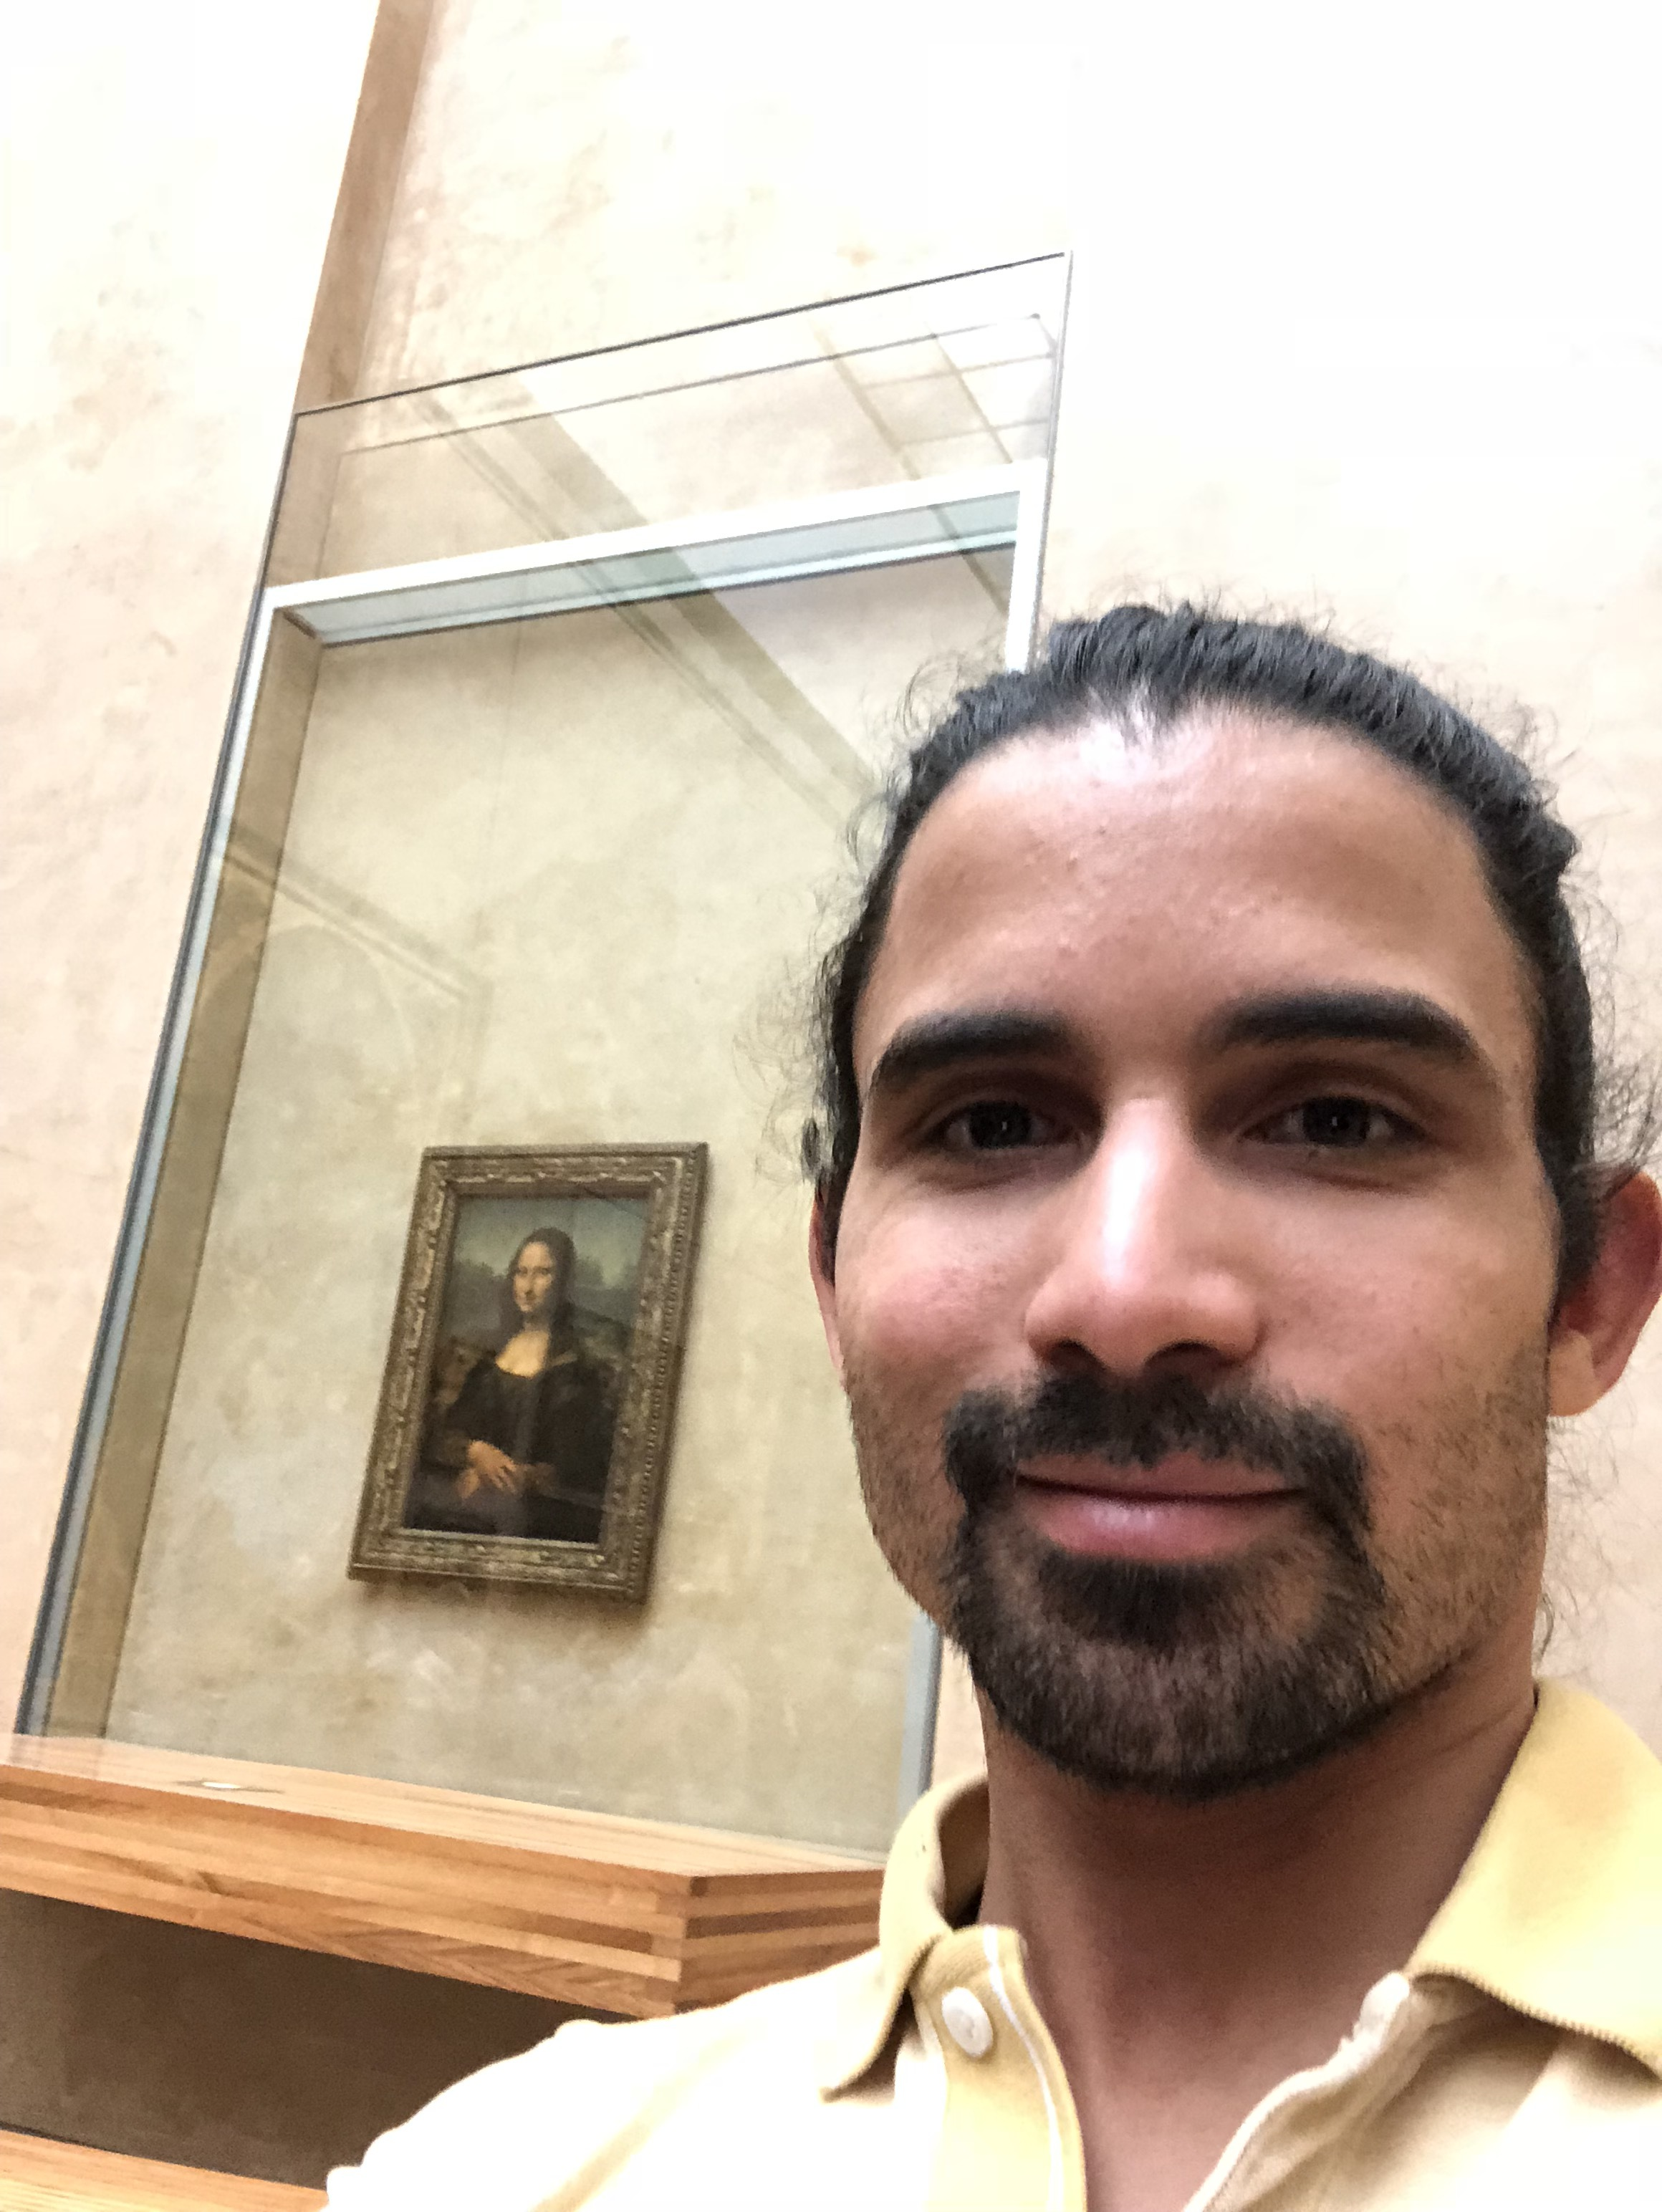 In all her glory. And Mona Lisa.